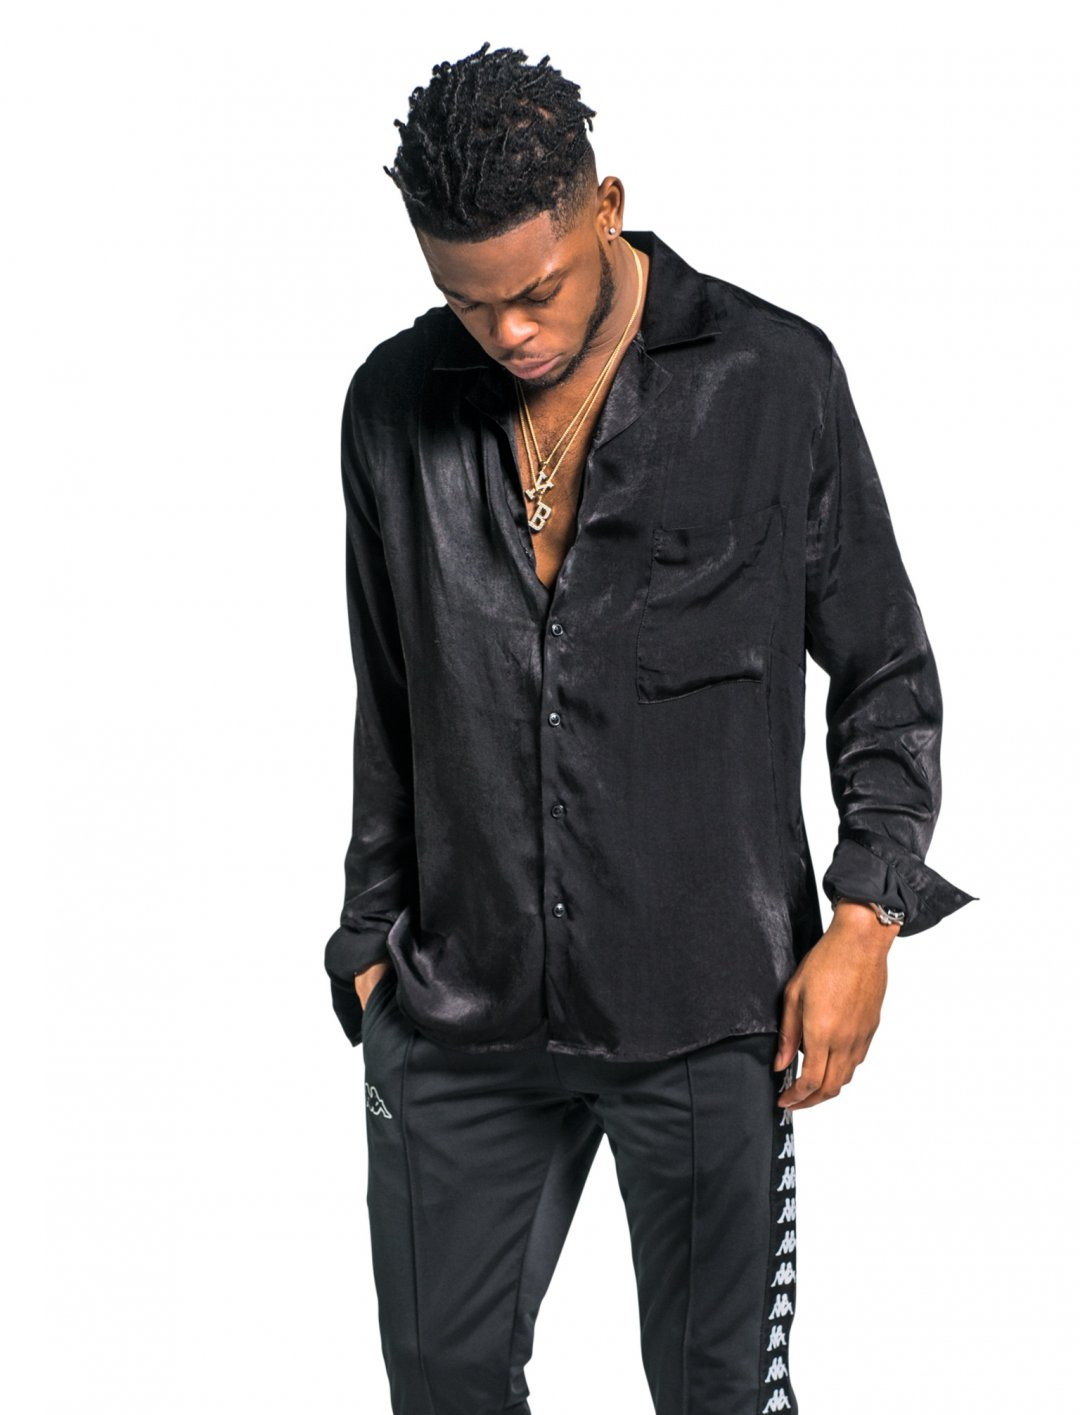 Yxng Bane's Satin Shirt Clothing Mennace